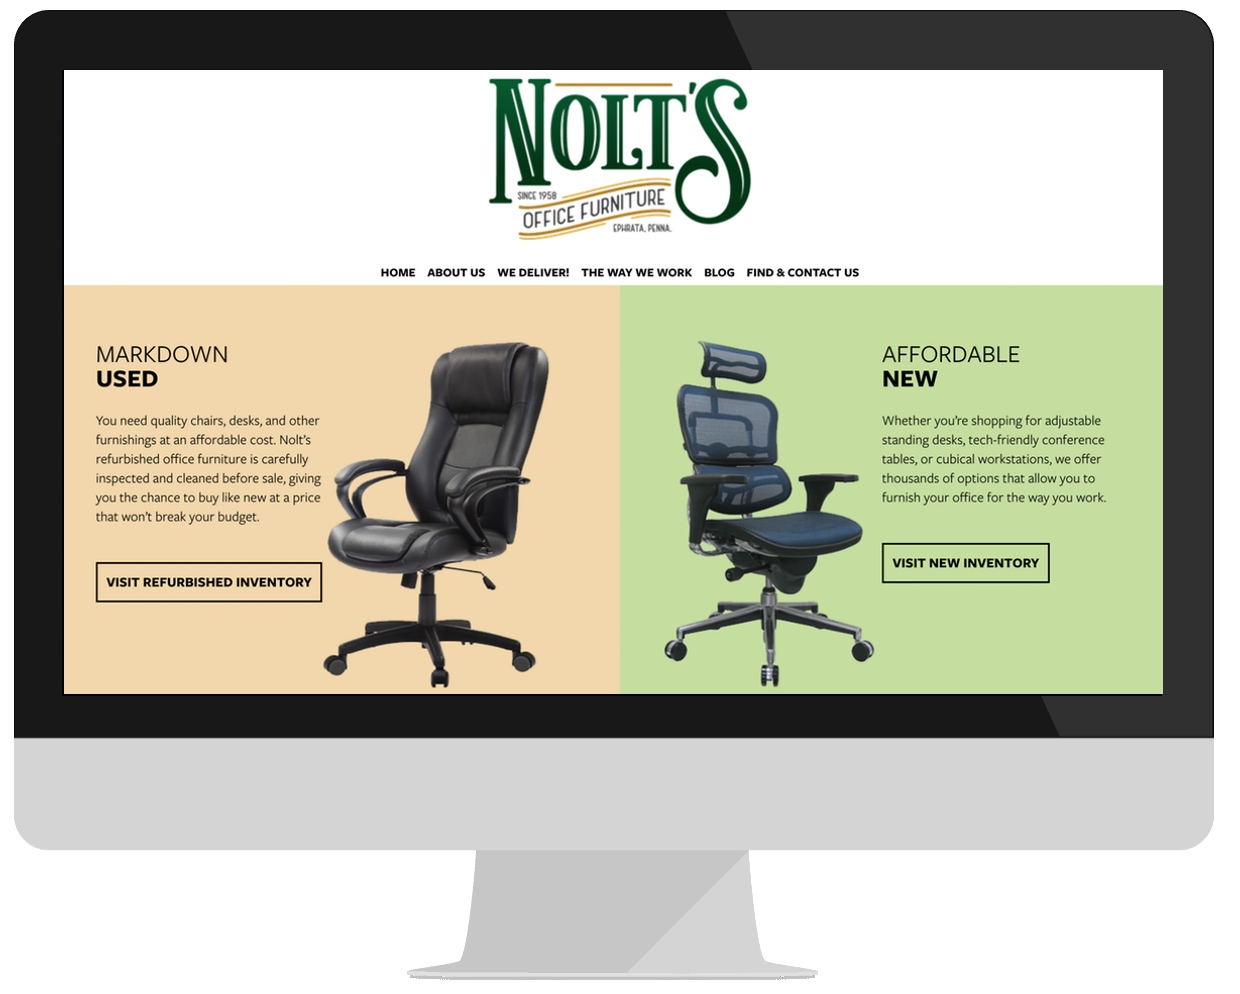 nolts-office-furniture